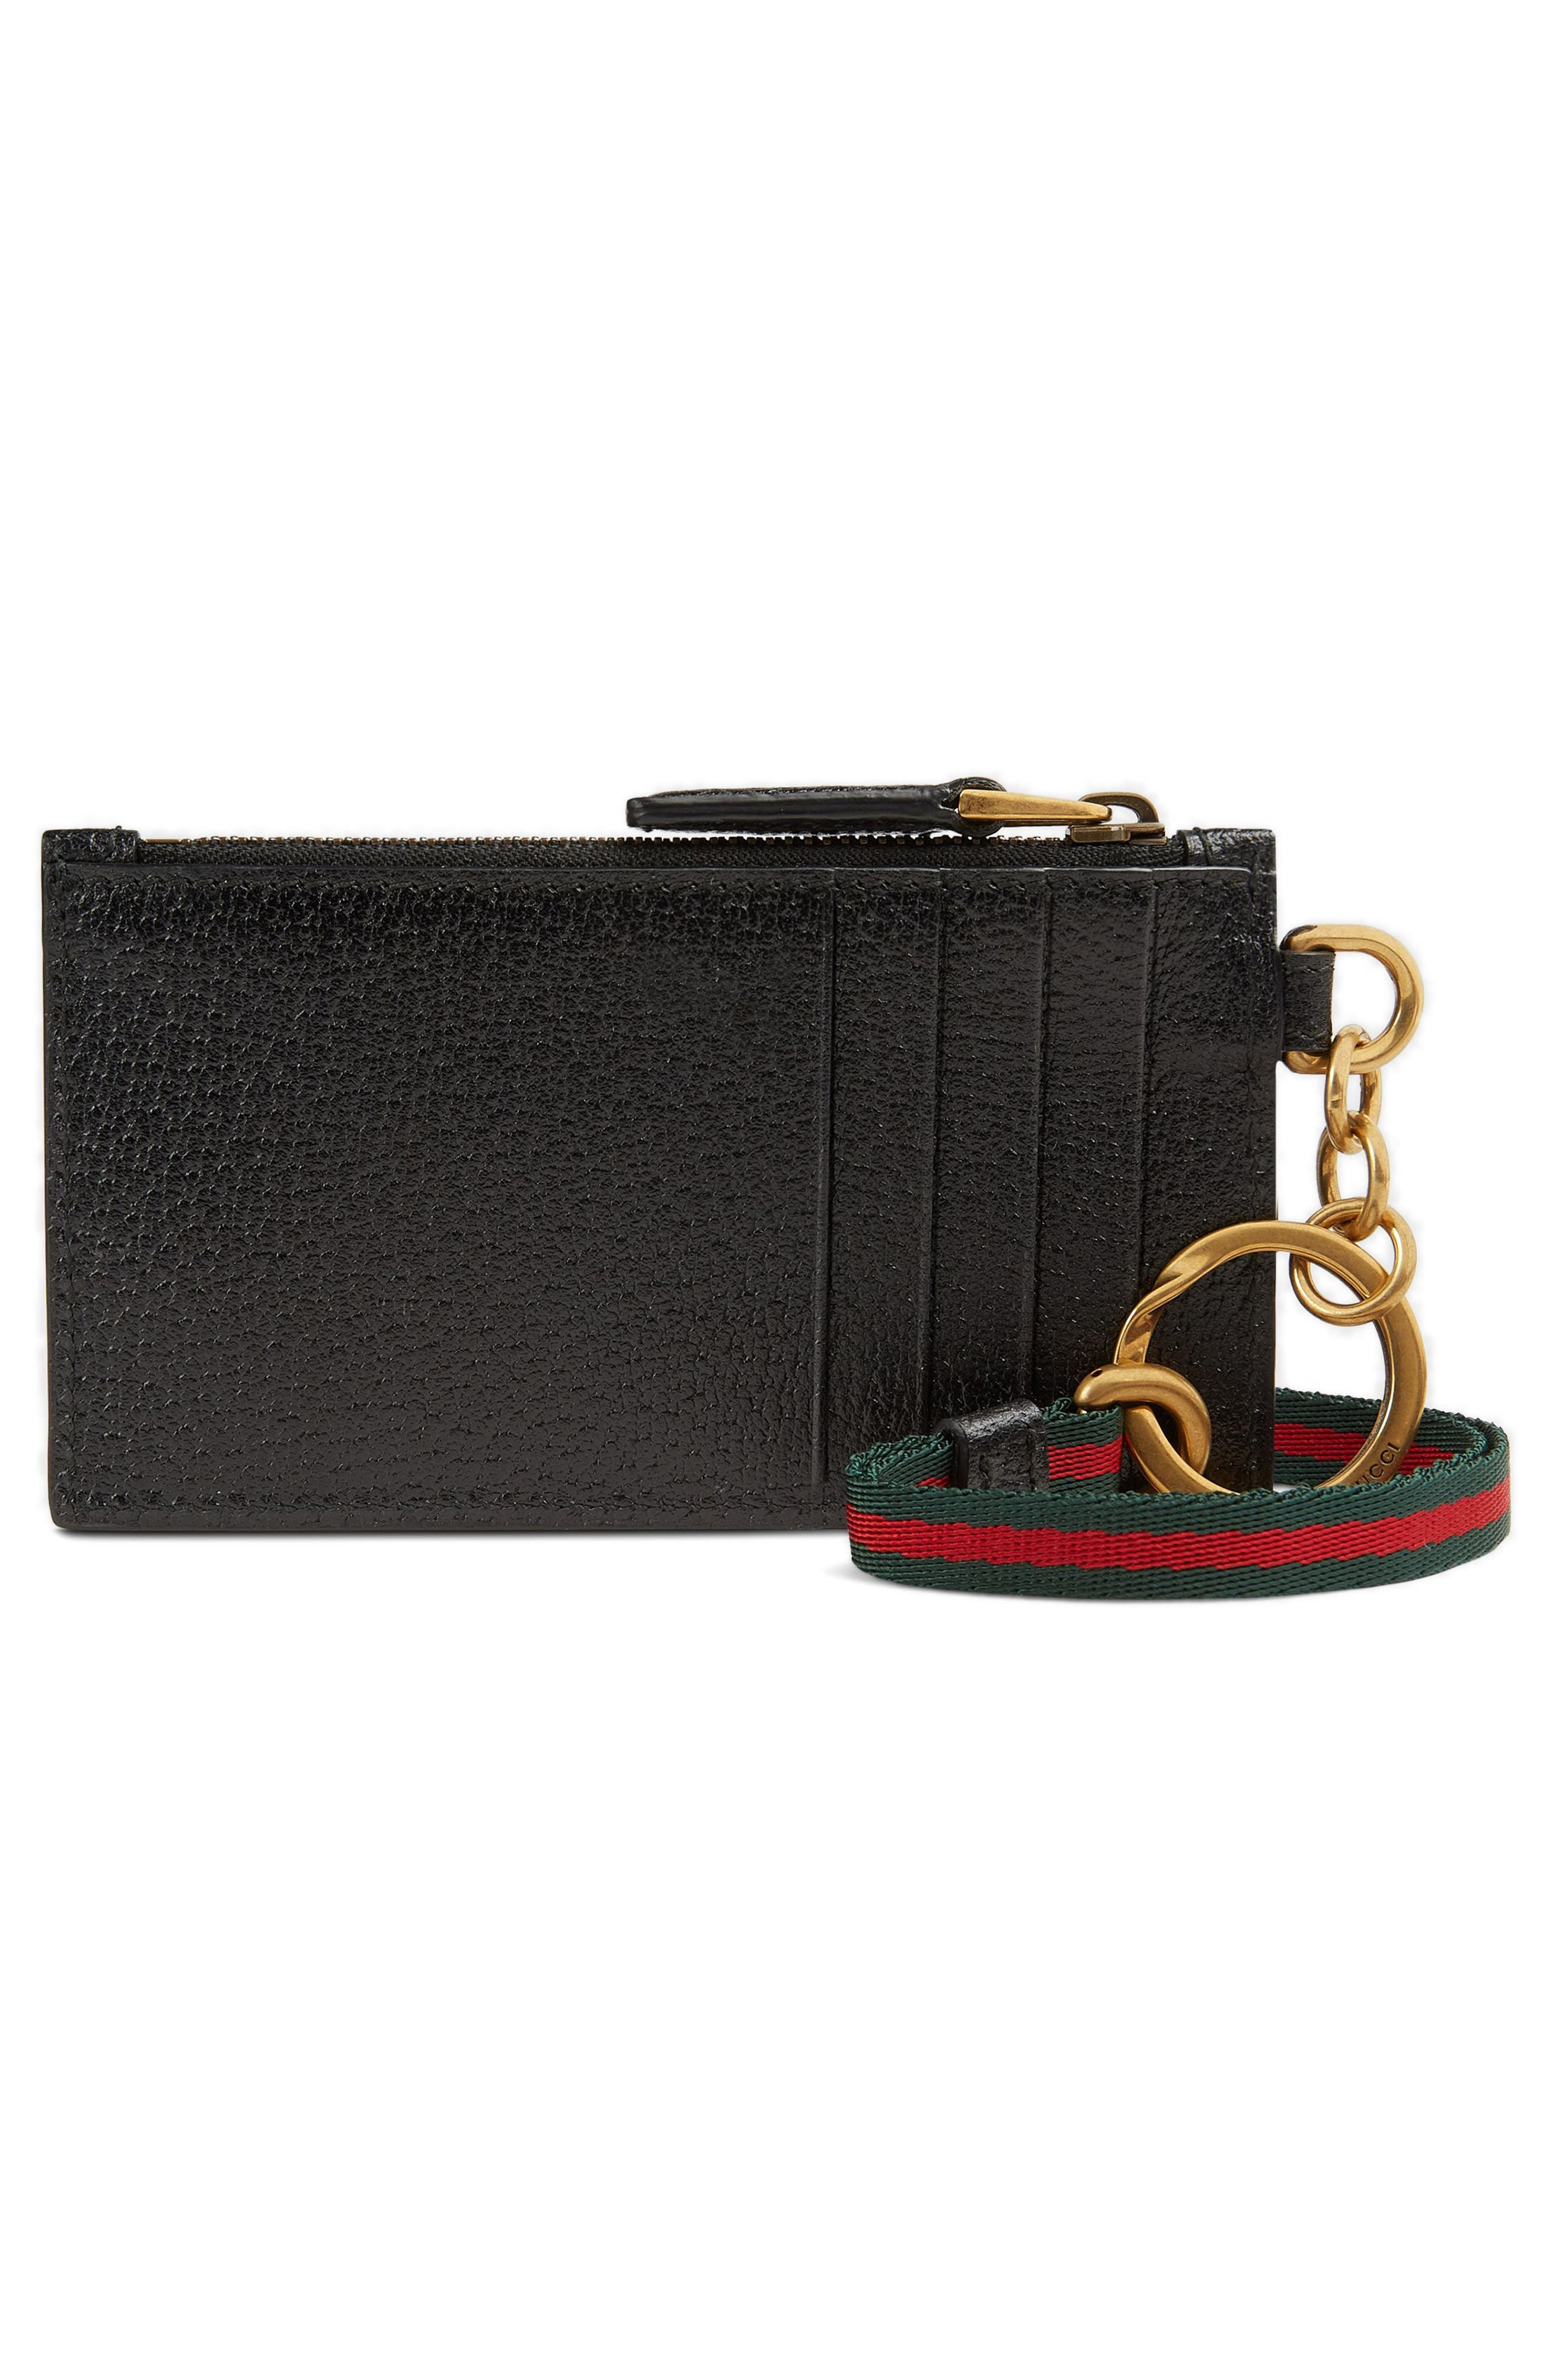 Lanyard Strap Zip Leather Pouch,                             Alternate thumbnail 3, color,                             001